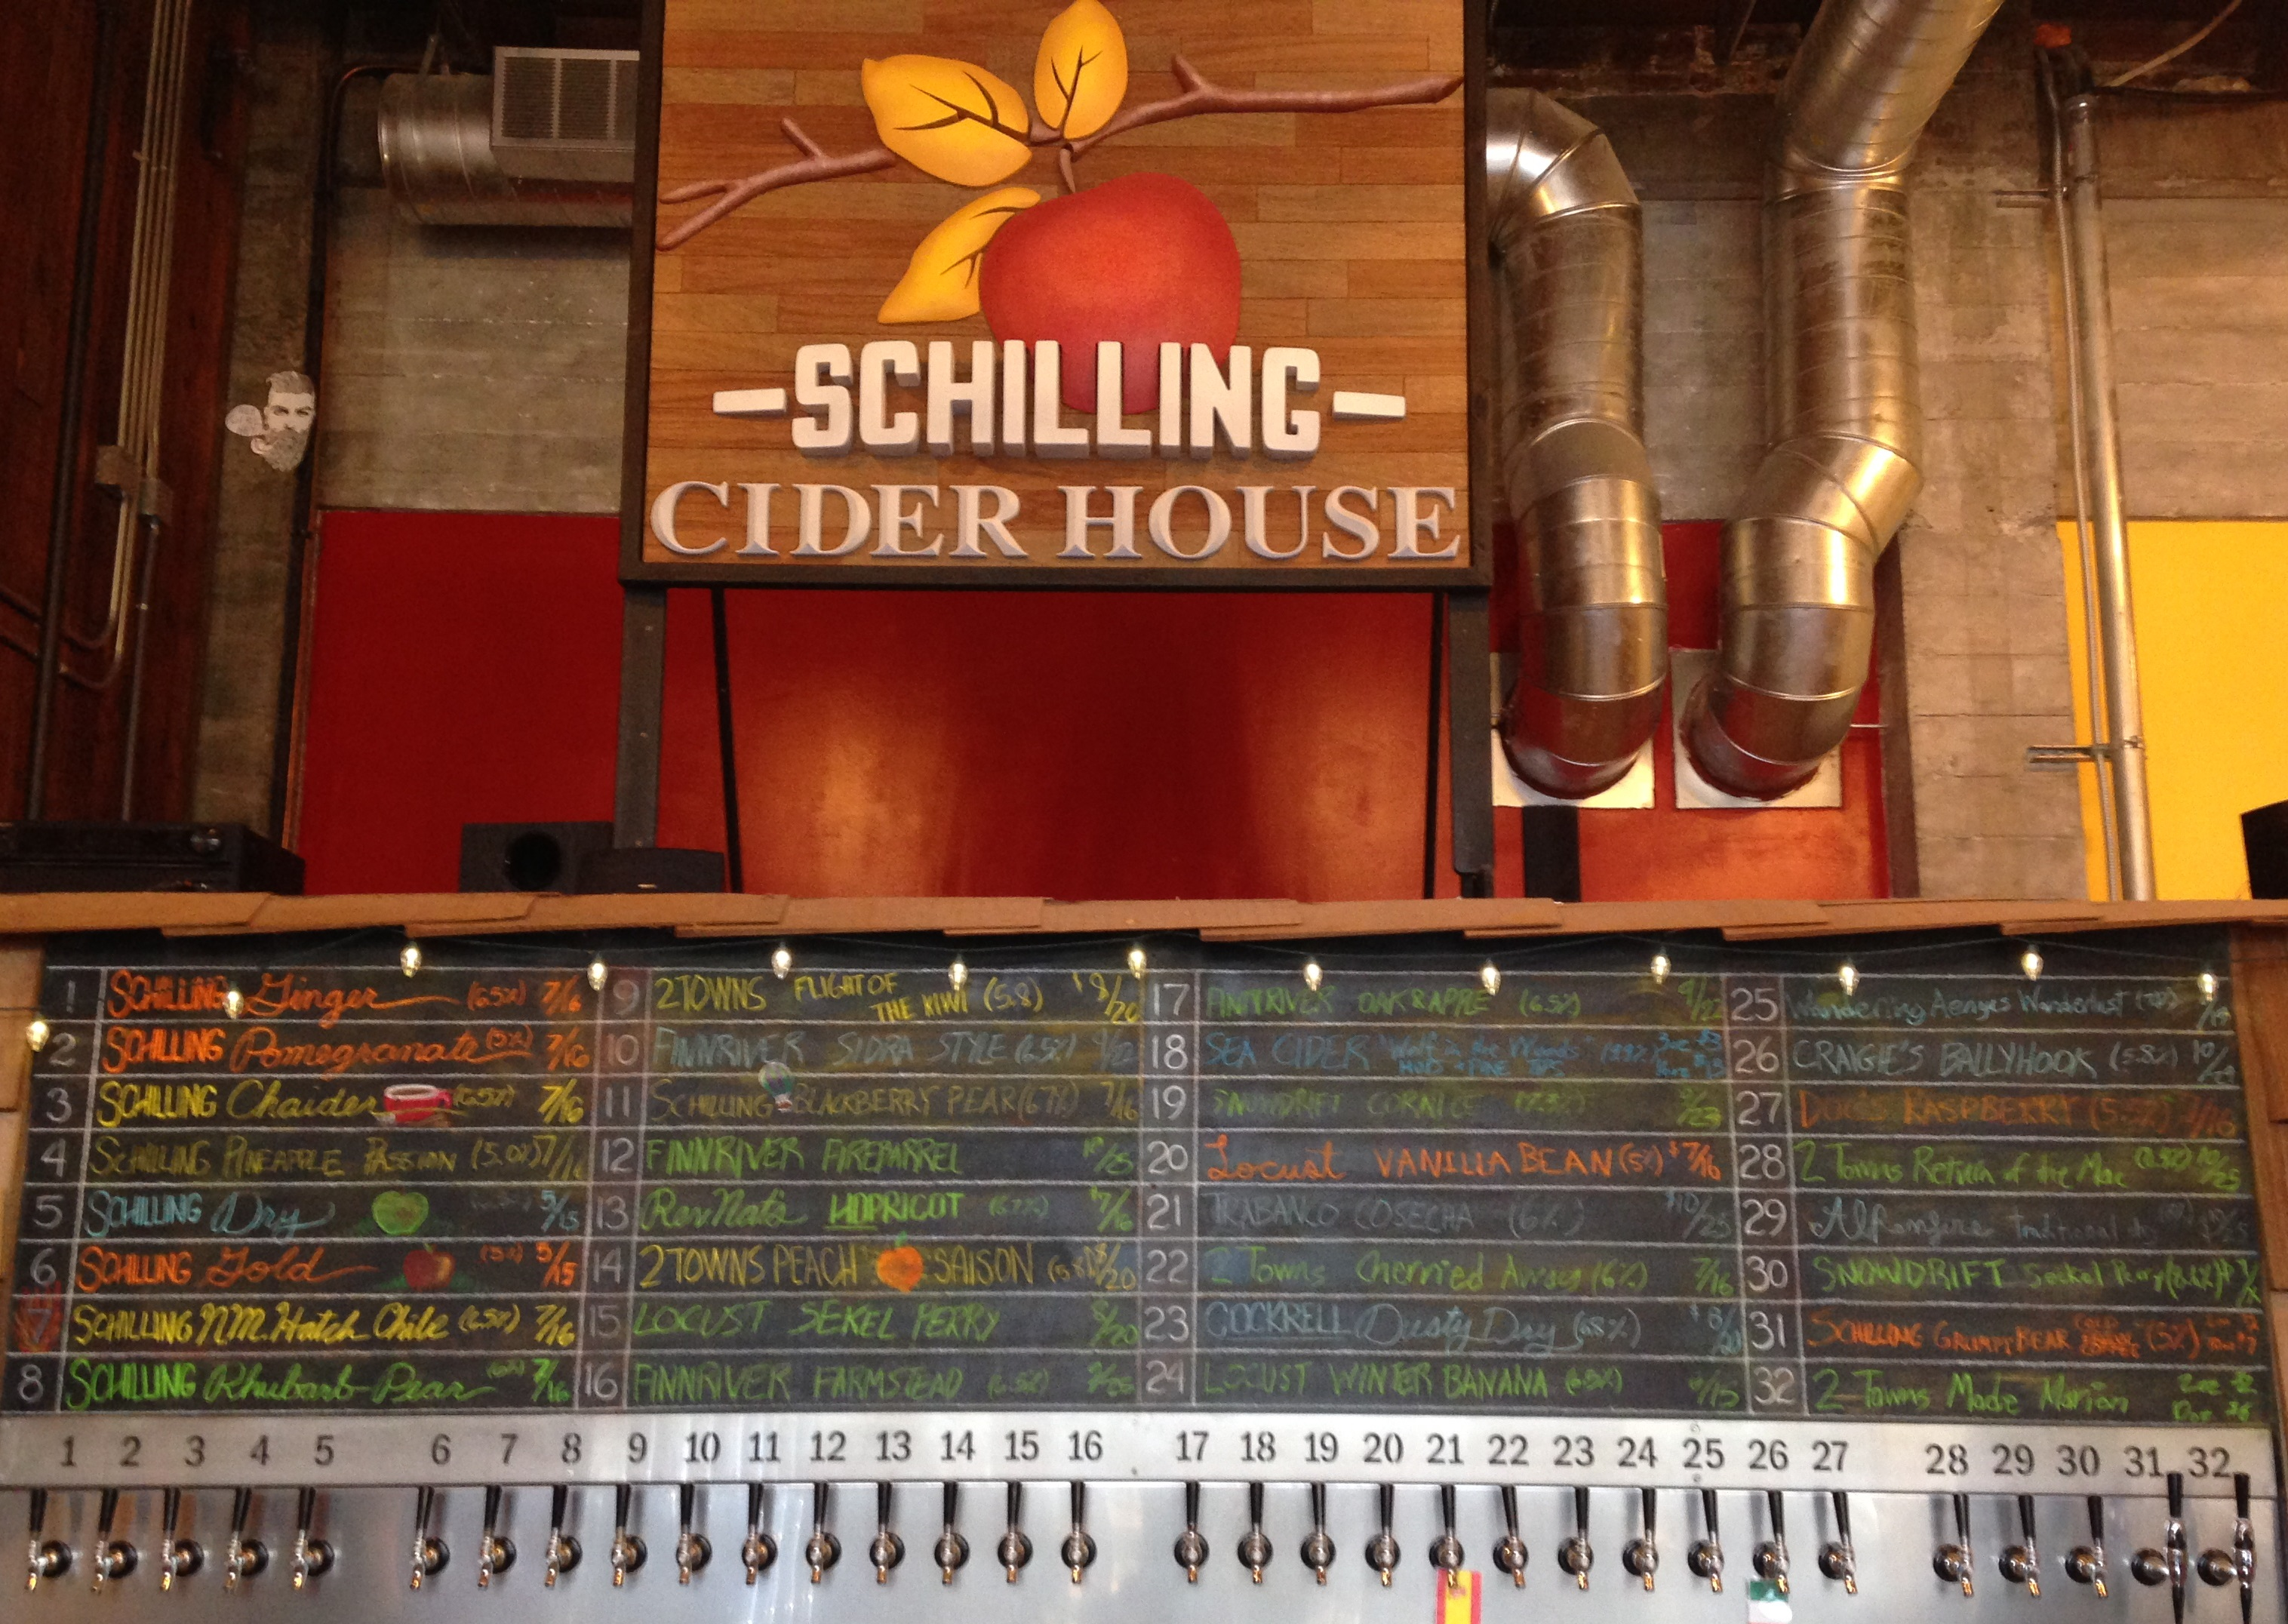 Schilling Cider House Visit 25 Tasting Notes Cider Says